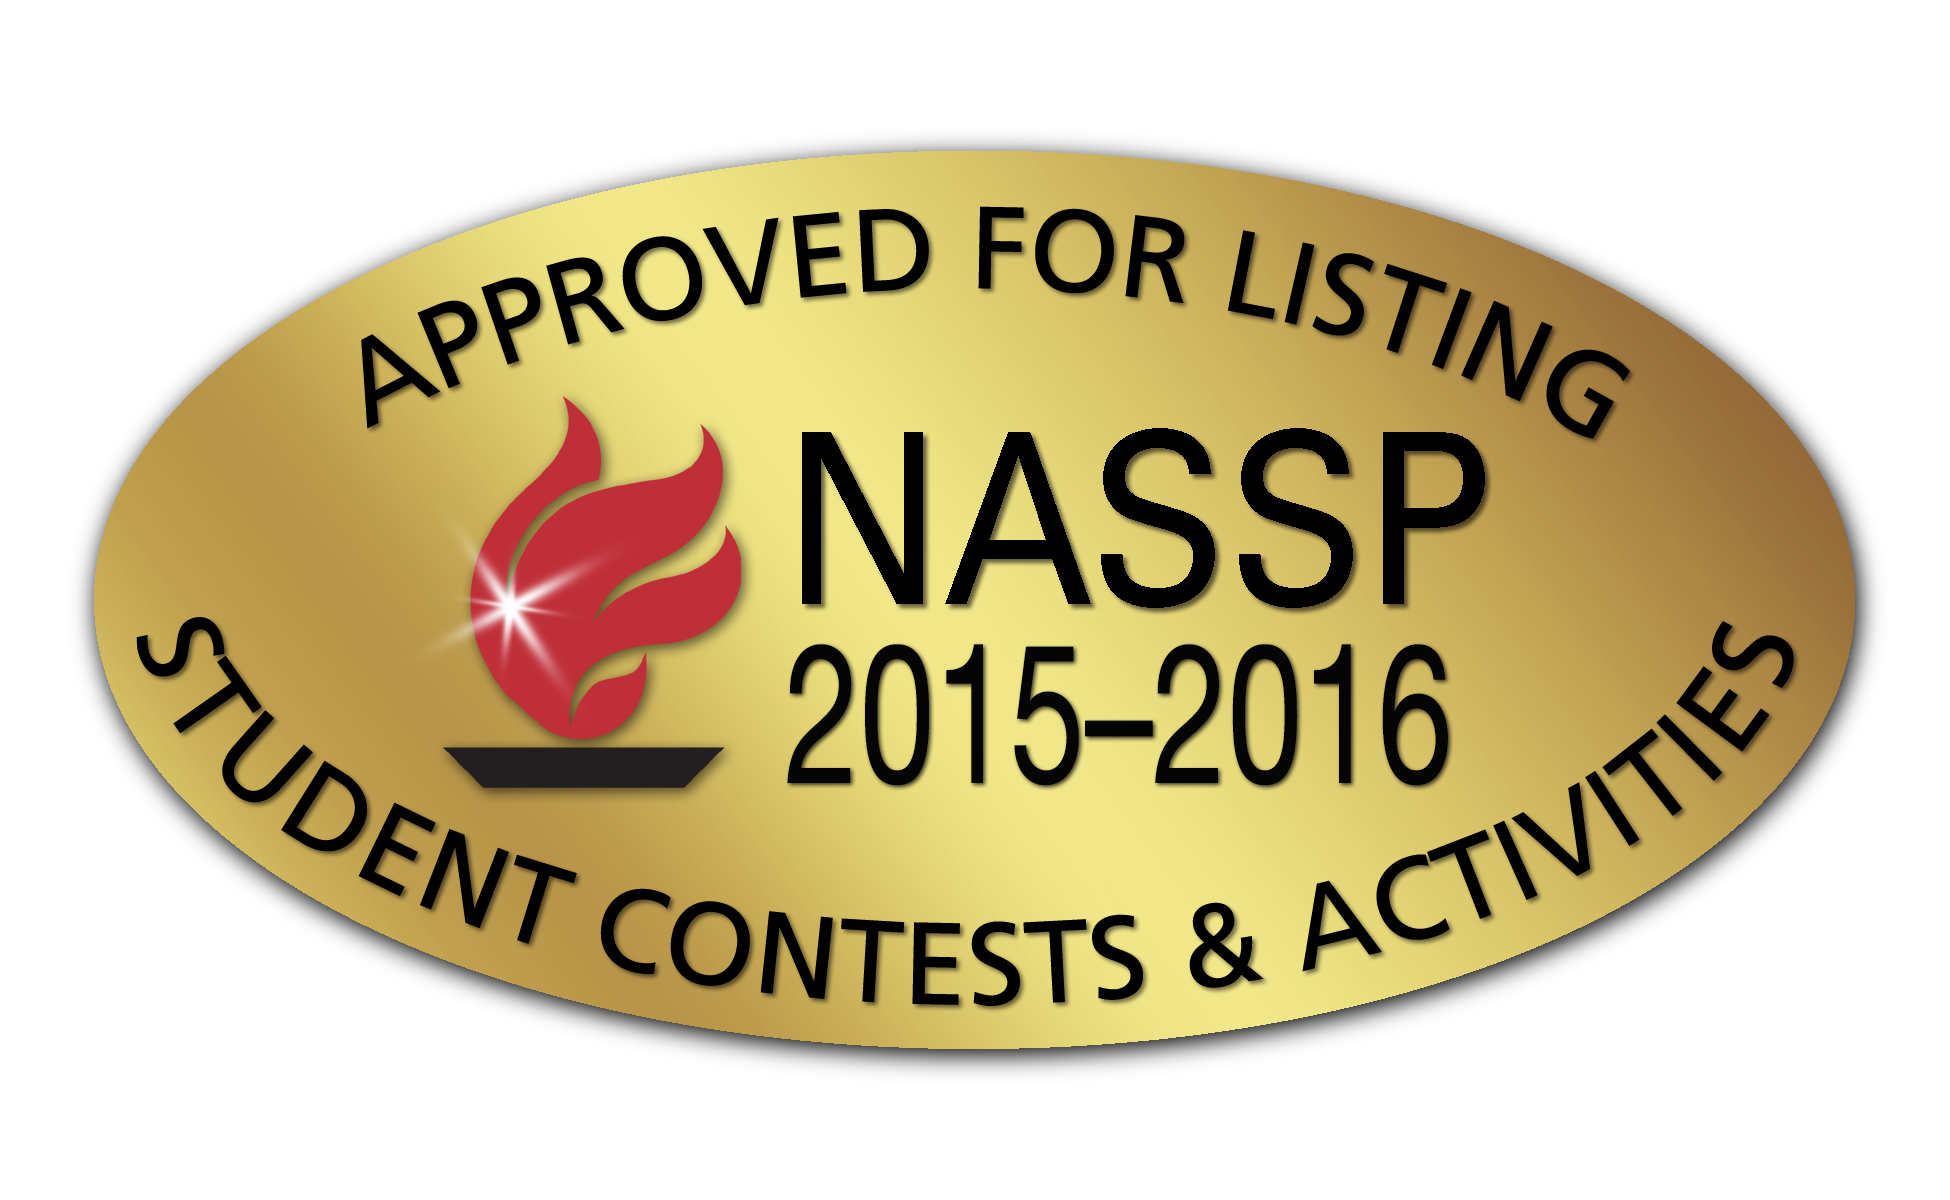 NASSP Student Contests & Activities